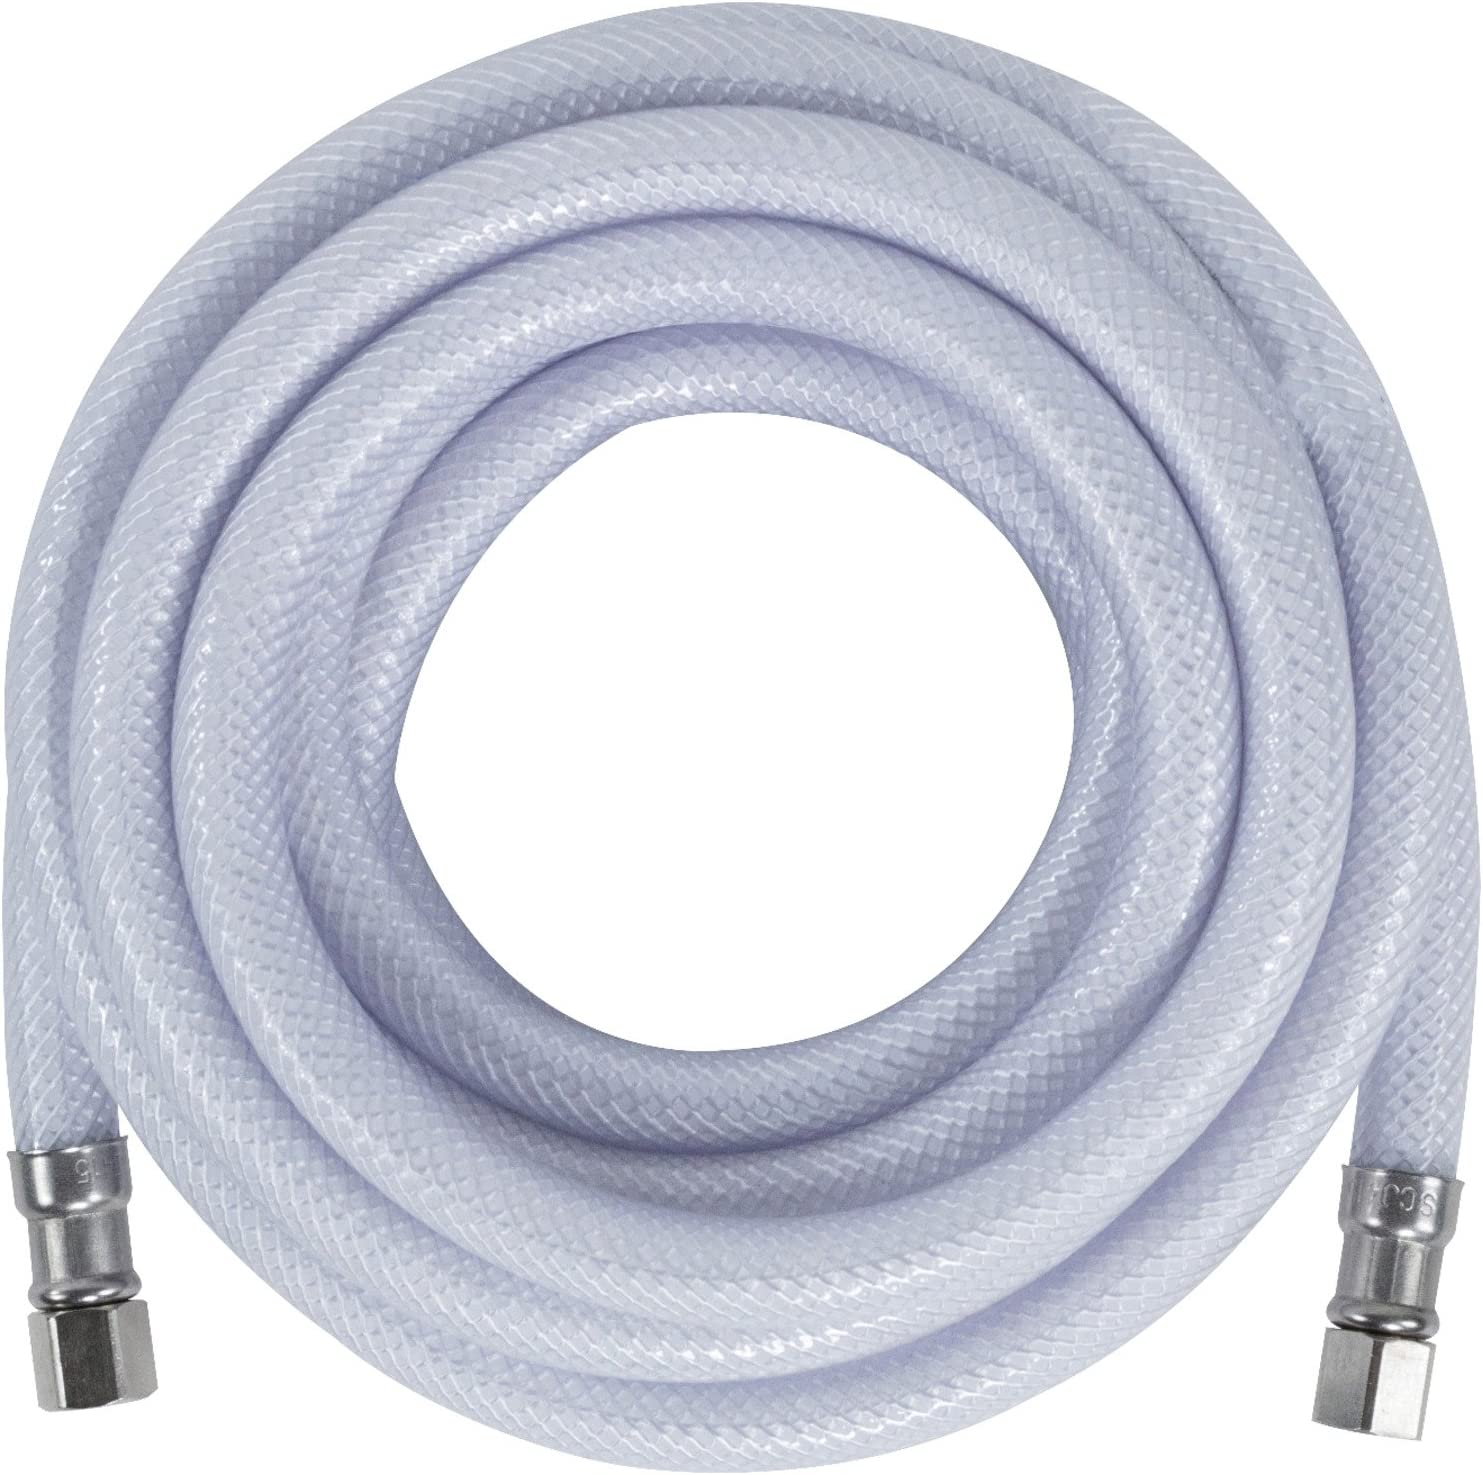 Certified Appliance Accessories Ice Maker Water Line, 15 Feet, Polyester-Reinforced PVC, White